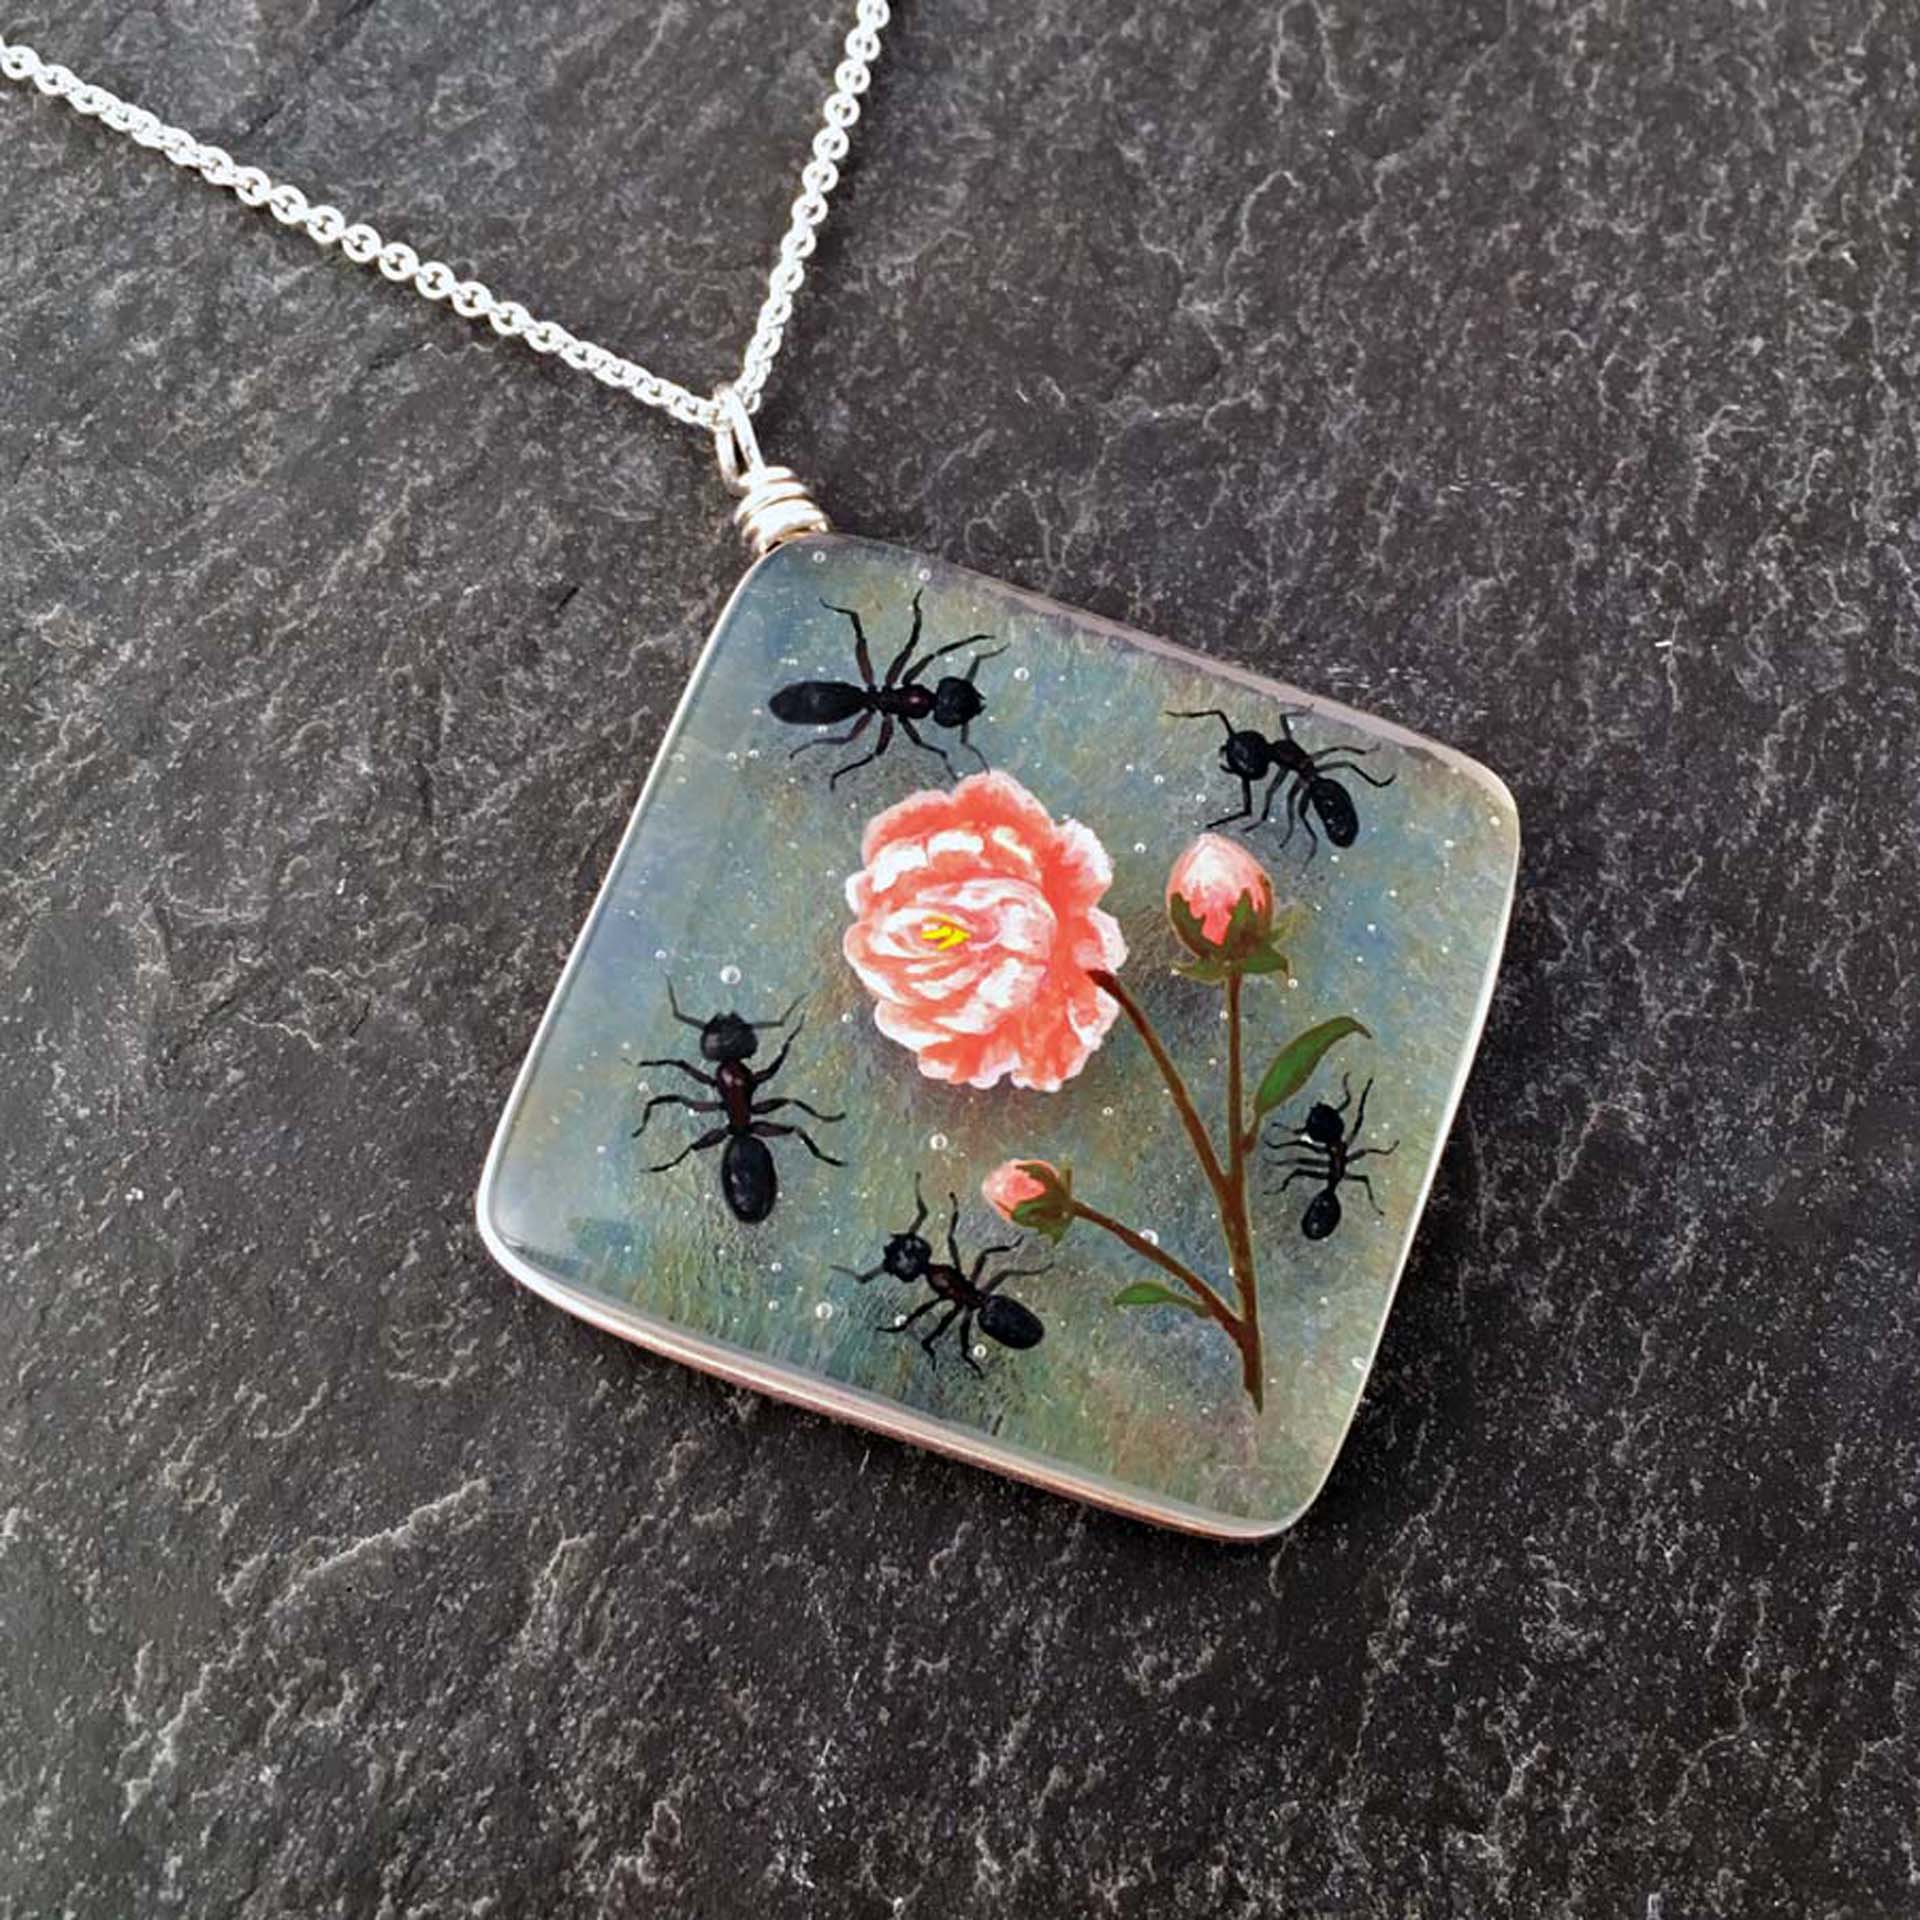 """2. Peony and Friends Necklace, kiln formed art glass, 1.75"""" x 2.25"""" x .25"""", Necklace, image painted with glass enamels, clear art glass with a rainbow iridescent coating, kiln formed, Argentium sterling silver wire setting and chain, $175.00."""